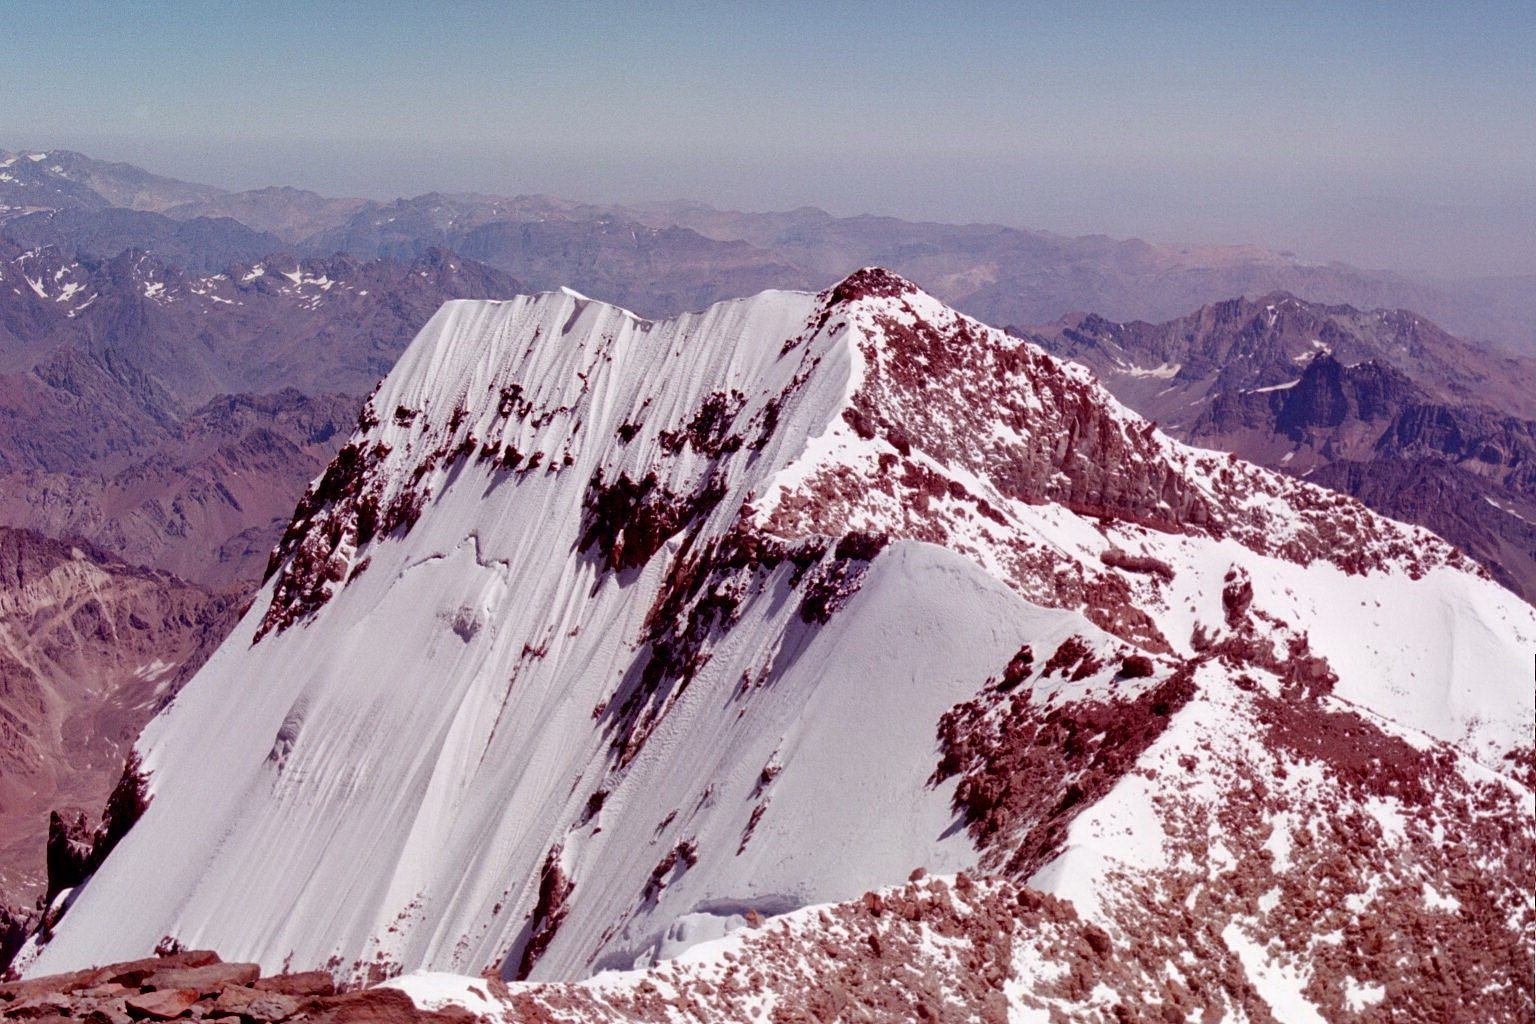 Aconcagua South Face from the summit